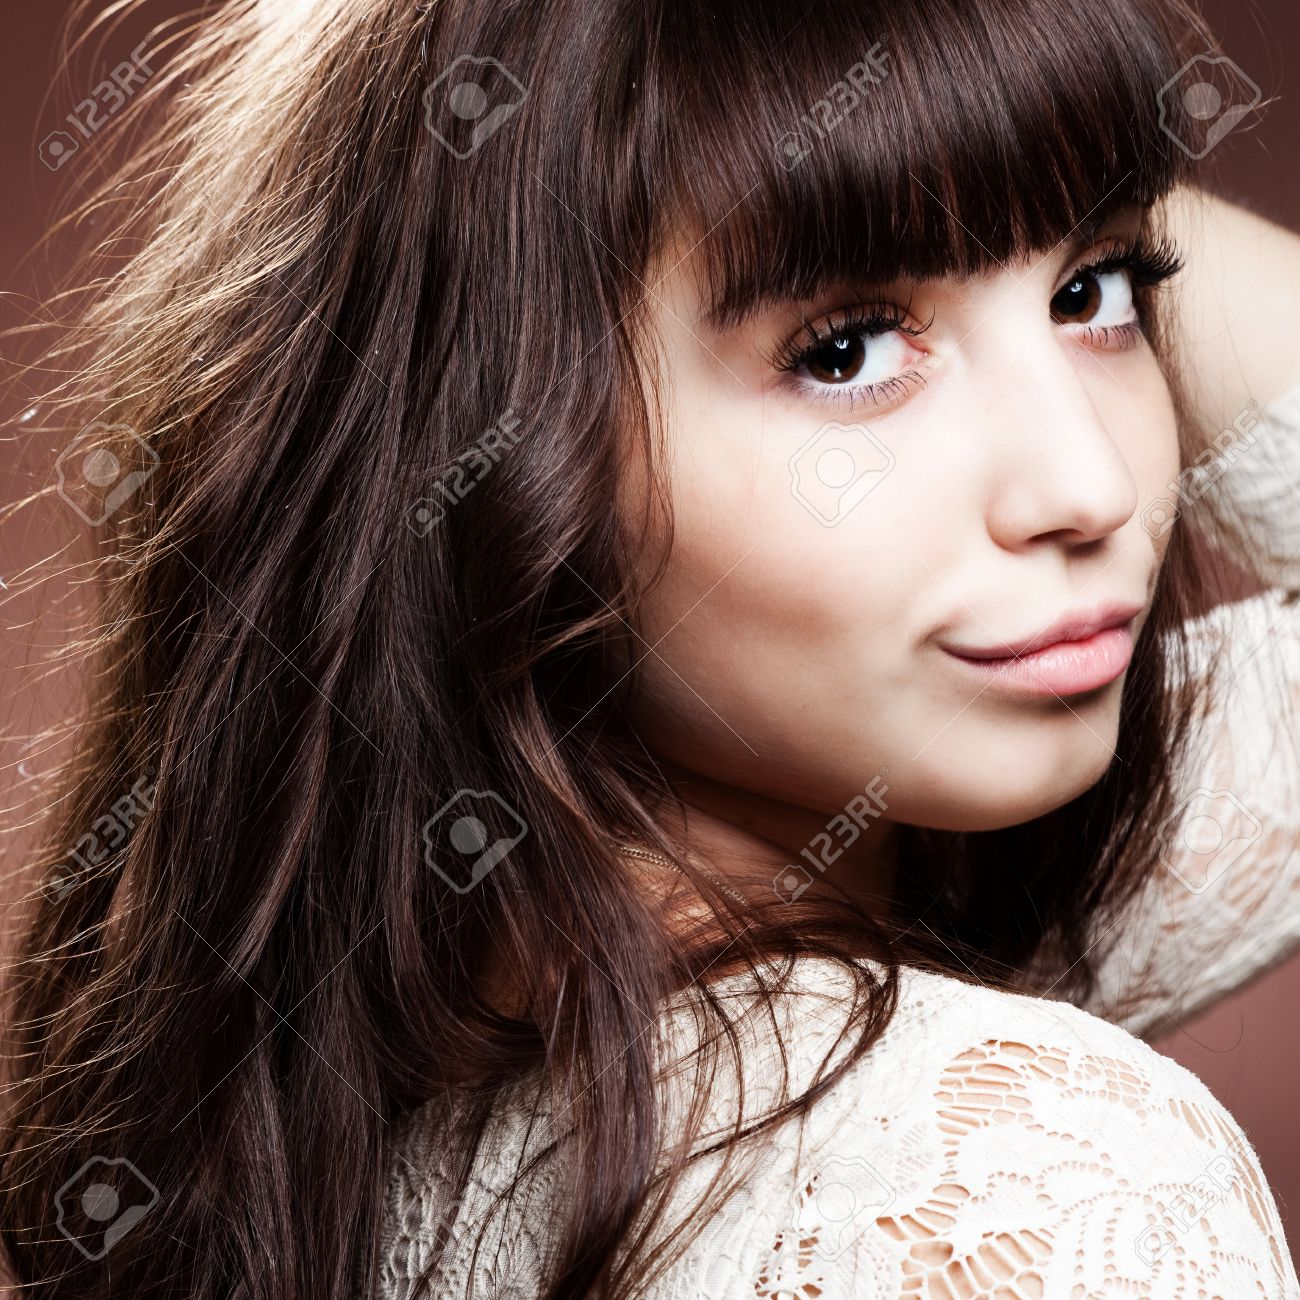 A Pretty Girl With Chocolate Hair Over Brown Stock Photo, Picture ...